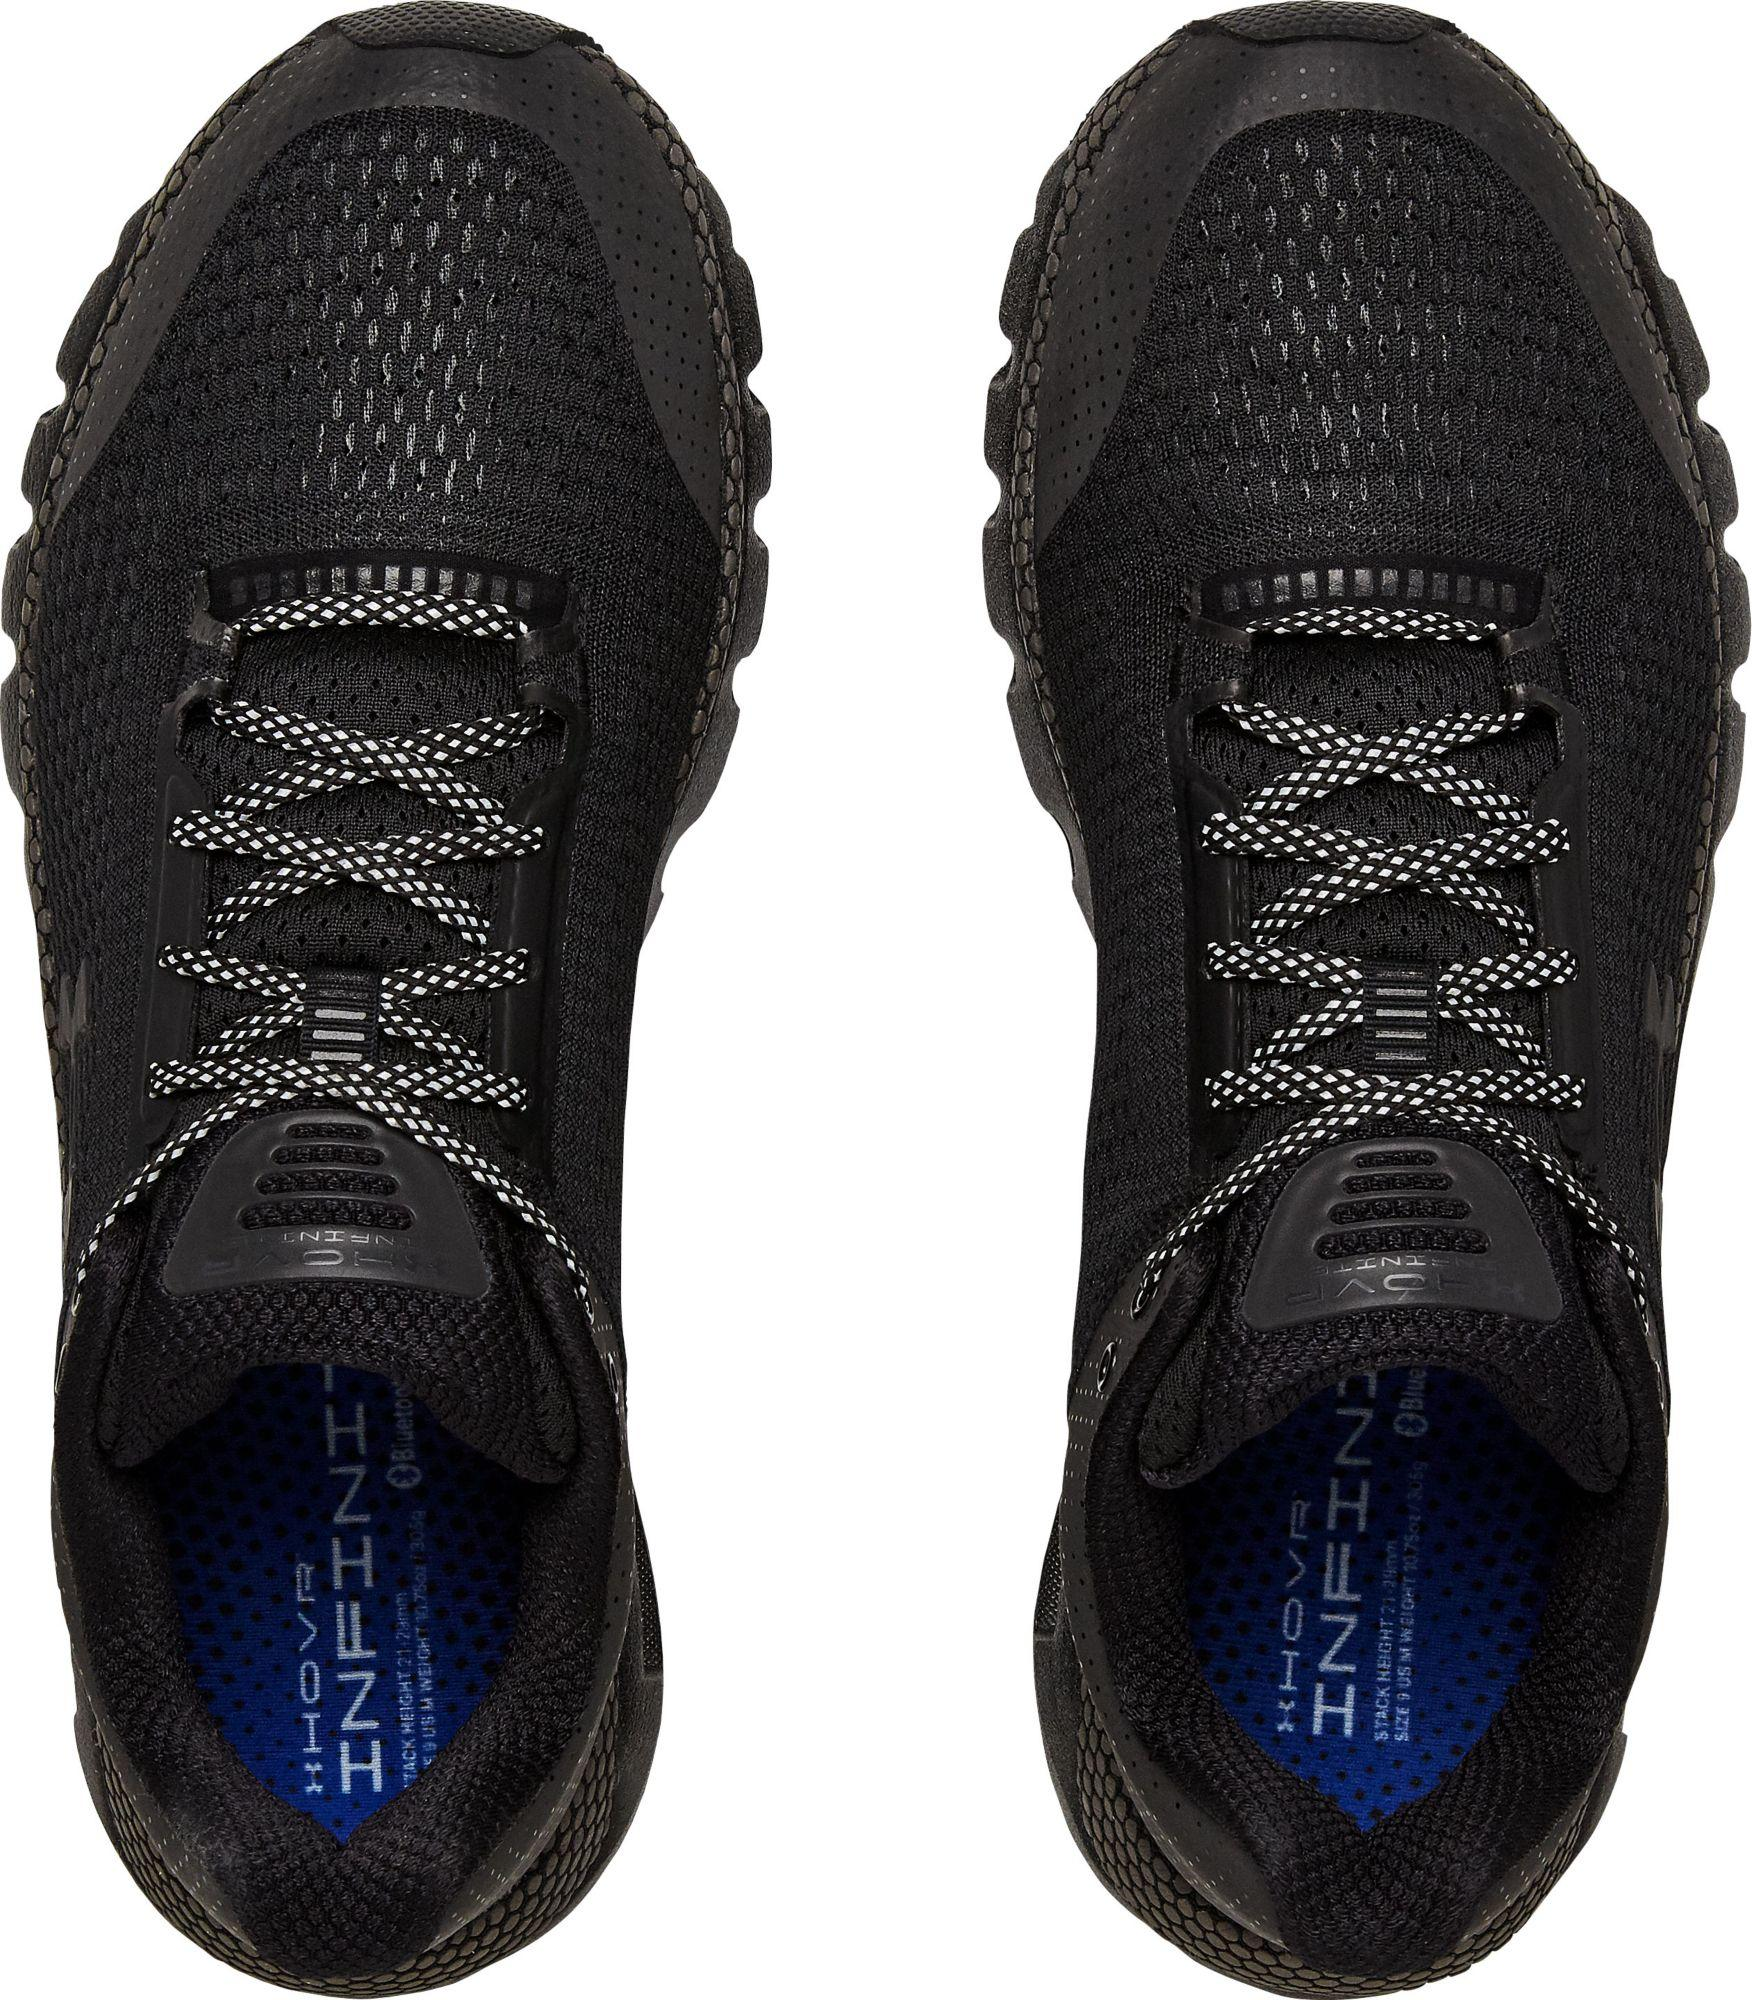 Hovr Infinite Reflect Running Shoes